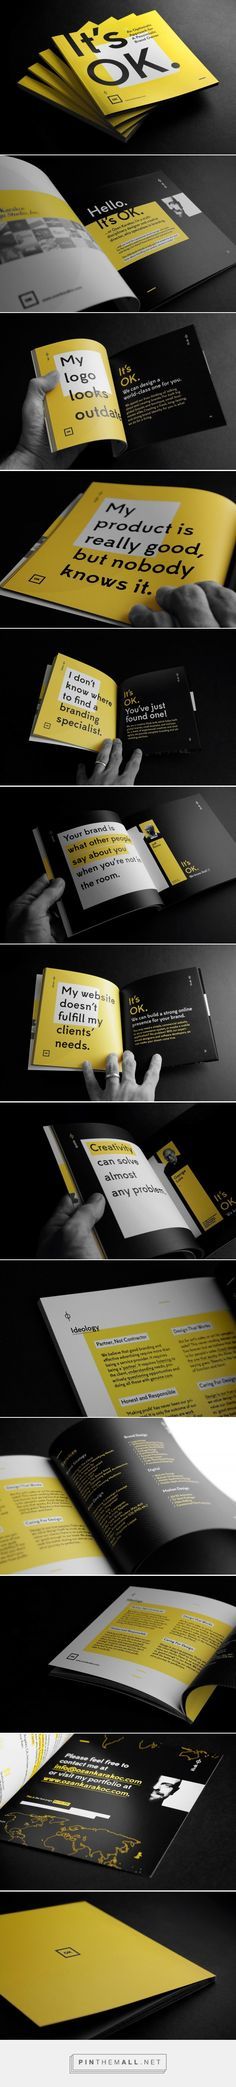 29 Best Ideas For Design Layout Booklet Graphics Graphisches Design, Logo Design, Game Design, Layout Design, Print Design, Portfolio Design, Mise En Page Portfolio, Editorial Design Layouts, Graphic Design Branding